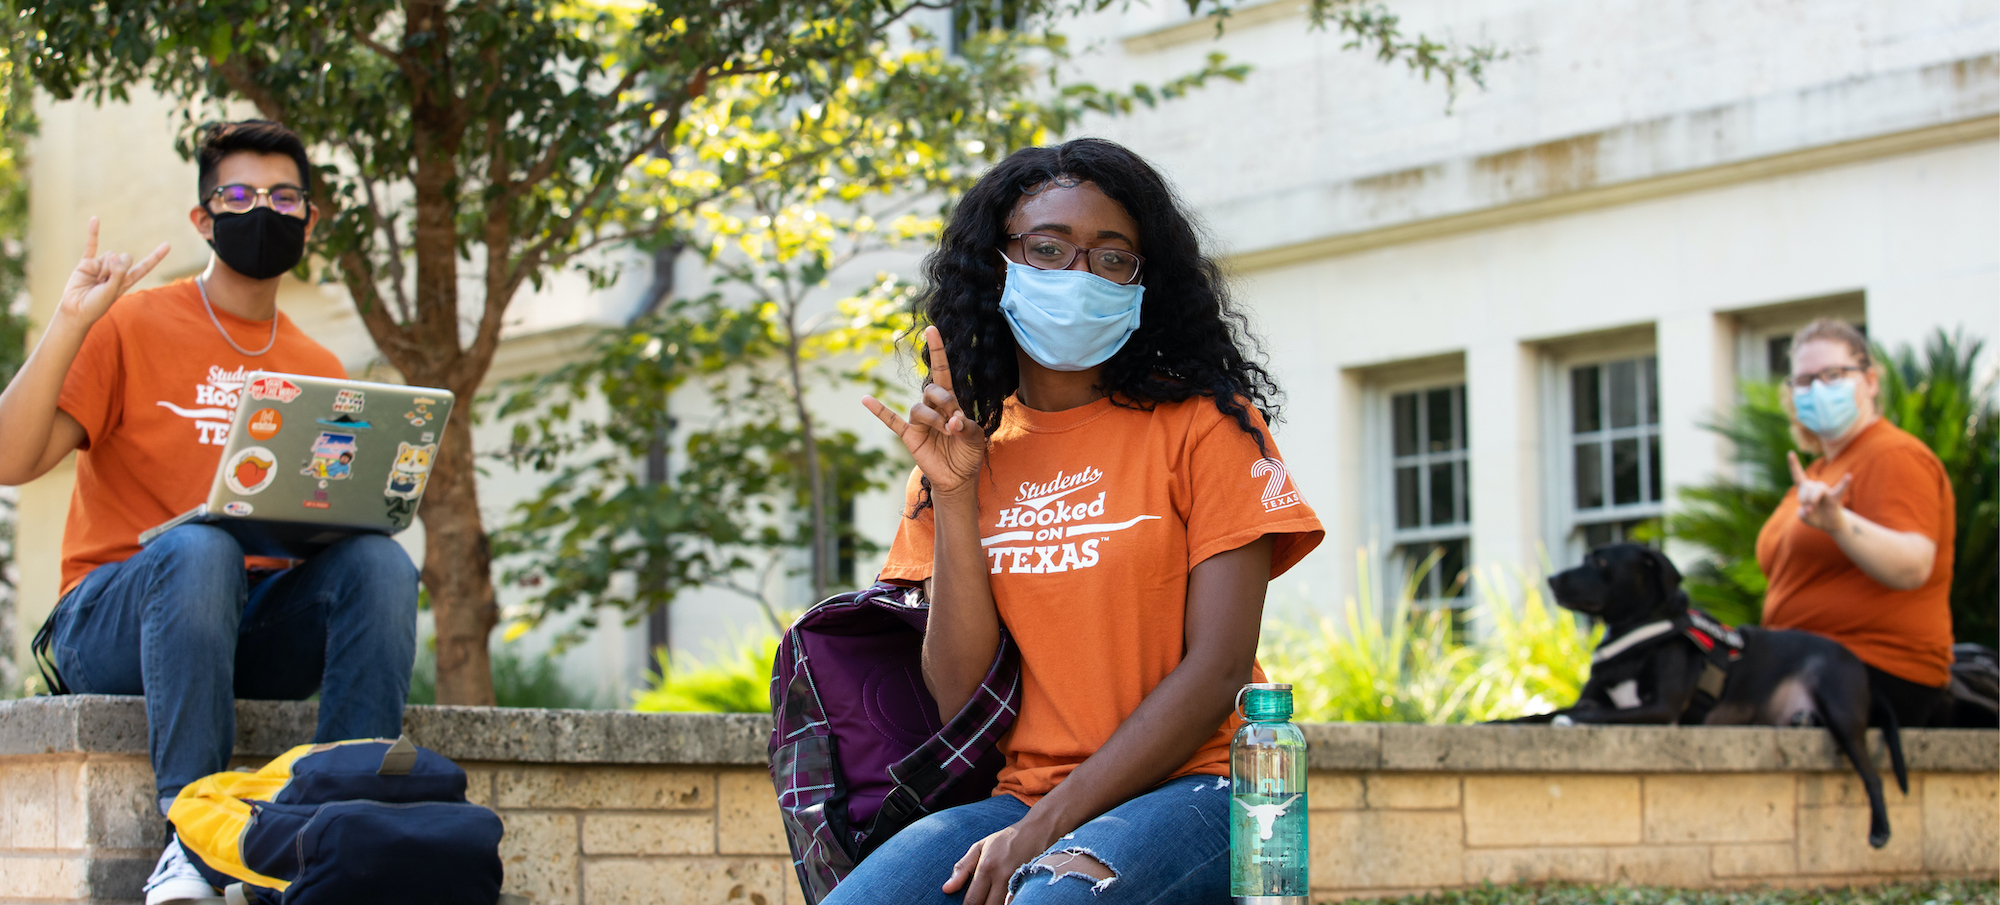 UT Students wearing masks on campus